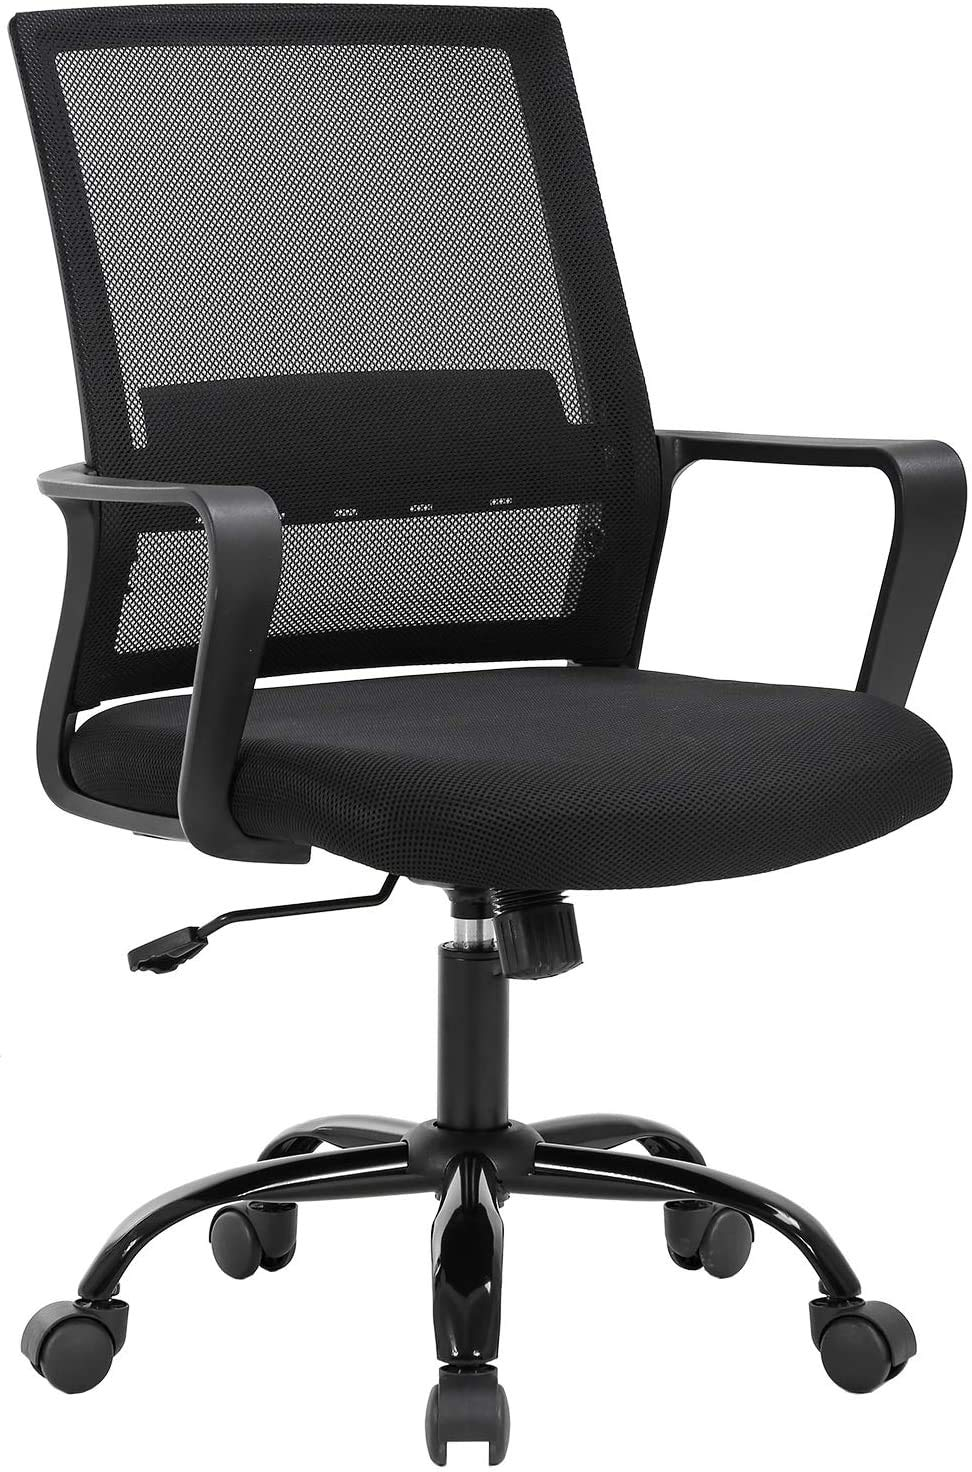 Simple Home Ergonomic Desk Office Chair Buy Online In Brunei At Desertcart